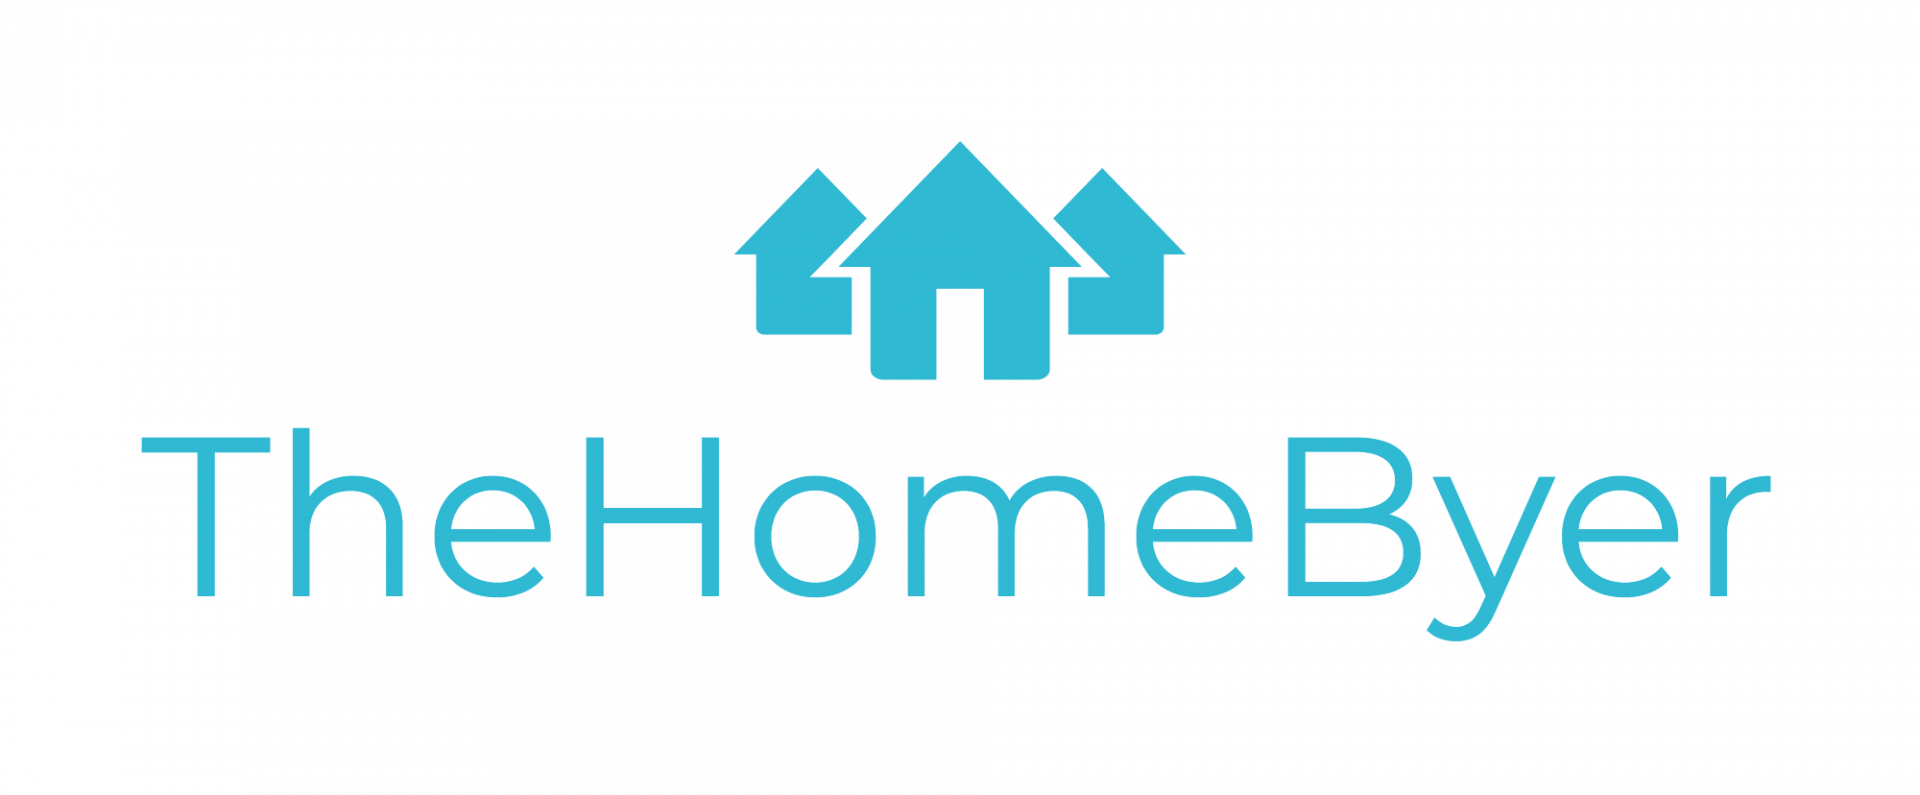 The Home Byer logo